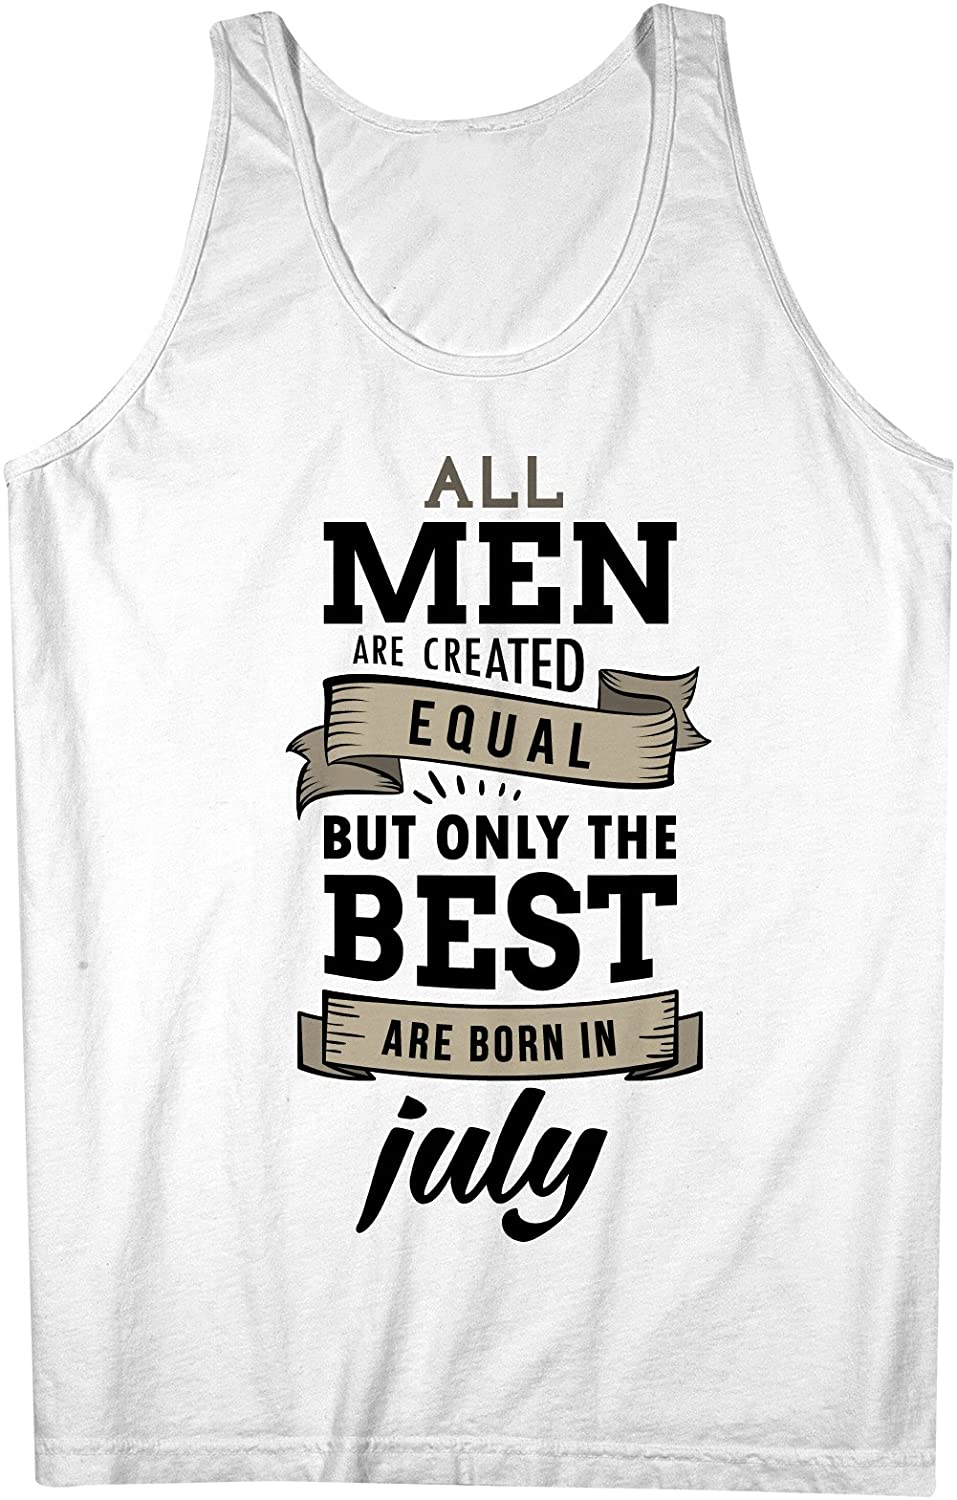 All Men Are Created Equal But Only The Best Are Born In July お誕生日 男性用 Tank Top Sleeveless Shirt